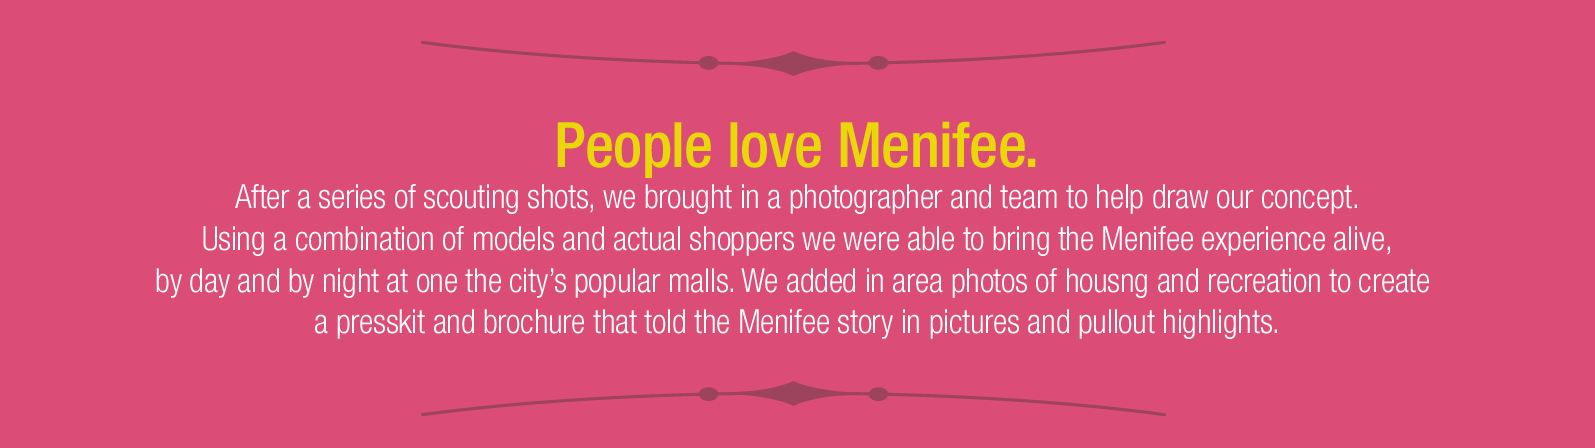 menifee-mid-red-text-a.png